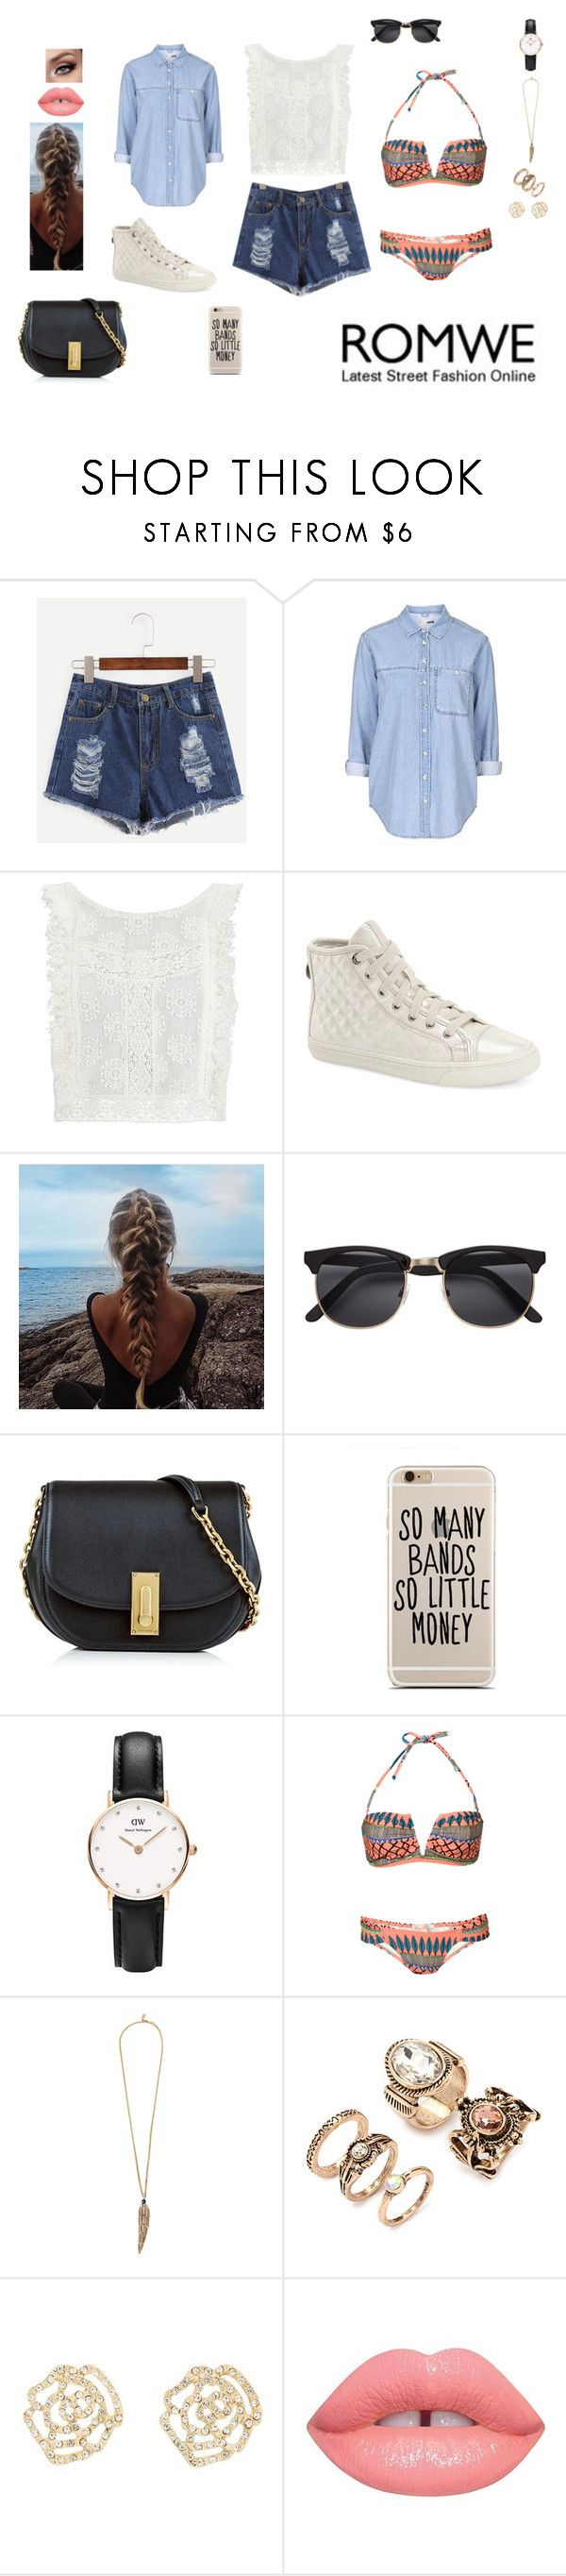 """The theme is: Blue Denim Shorts #2"" by leacousty55 ❤ liked on Polyvore featuring Topshop, MINKPINK, Geox, Marc Jacobs, Daniel Wellington, Mara Hoffman, Roberto Cavalli, Forever 21 and Charlotte Russe"